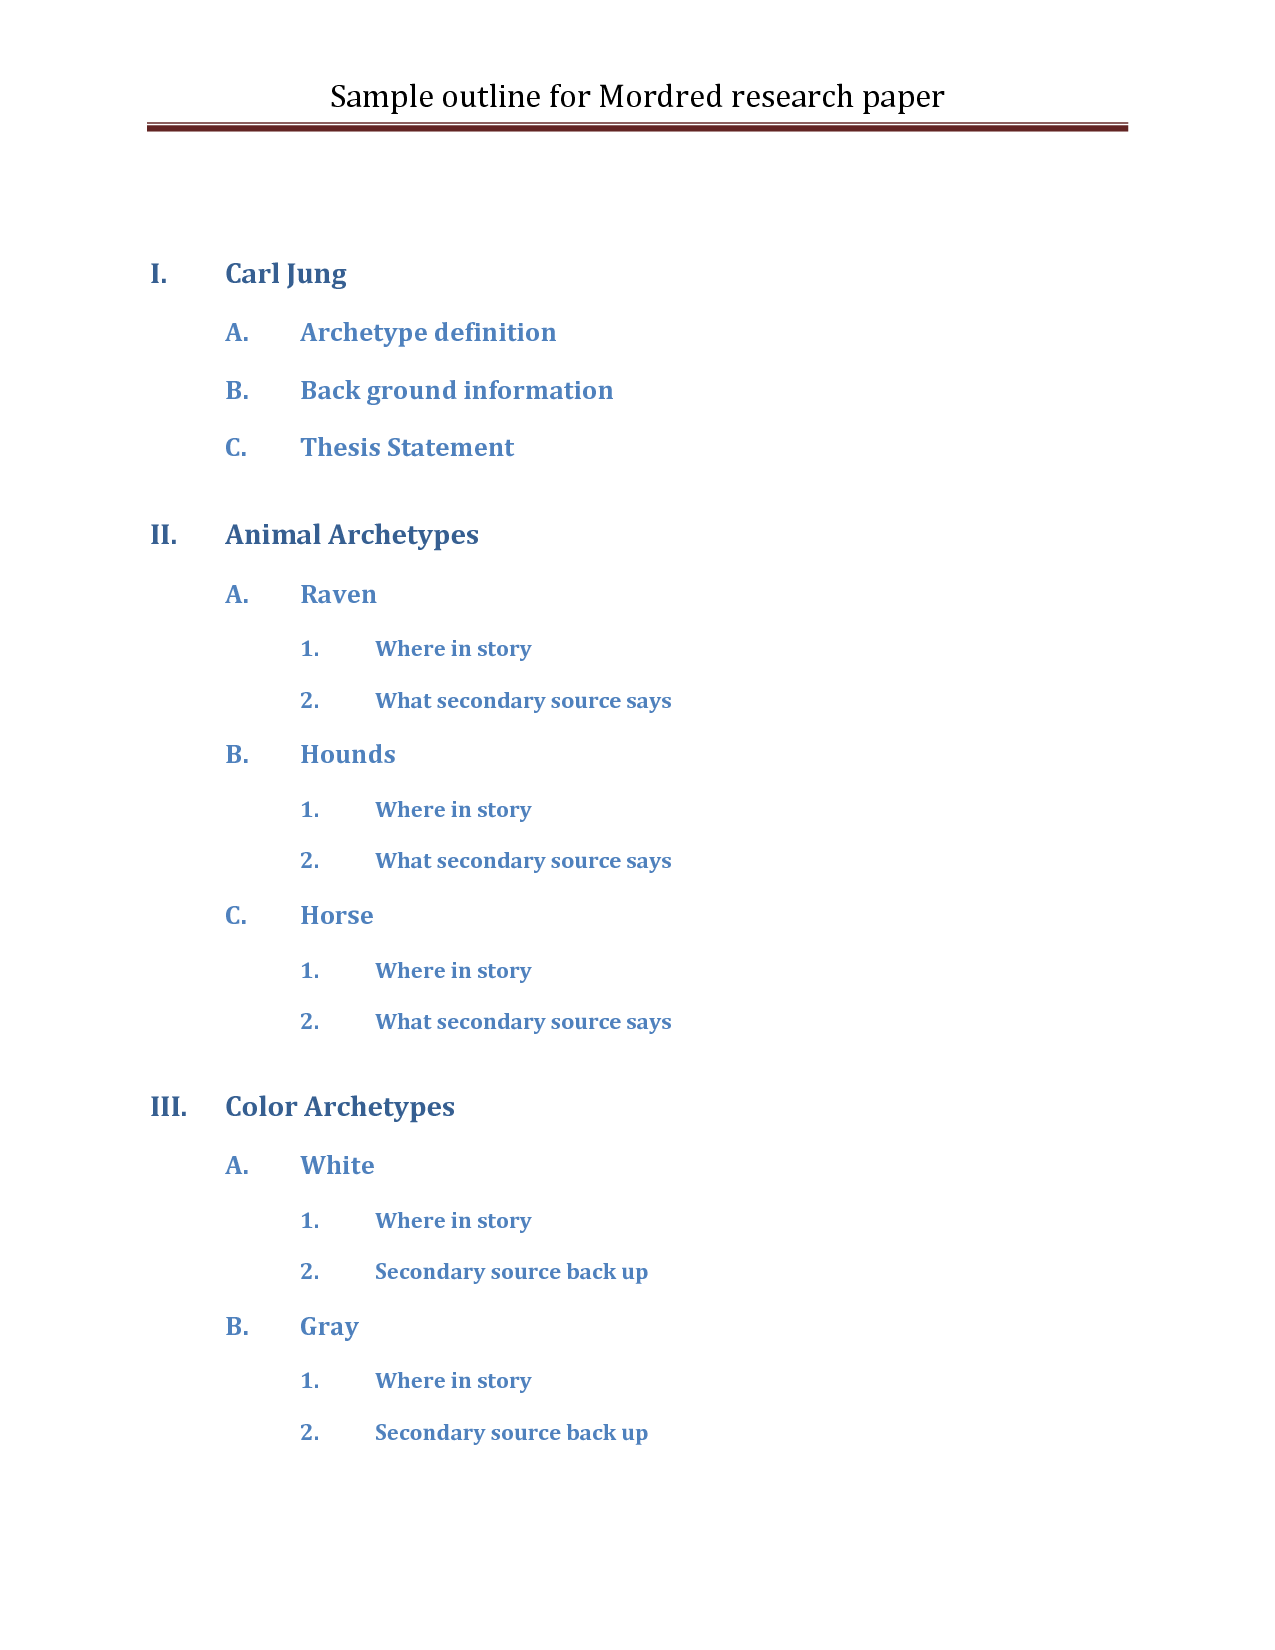 Term paper outline help